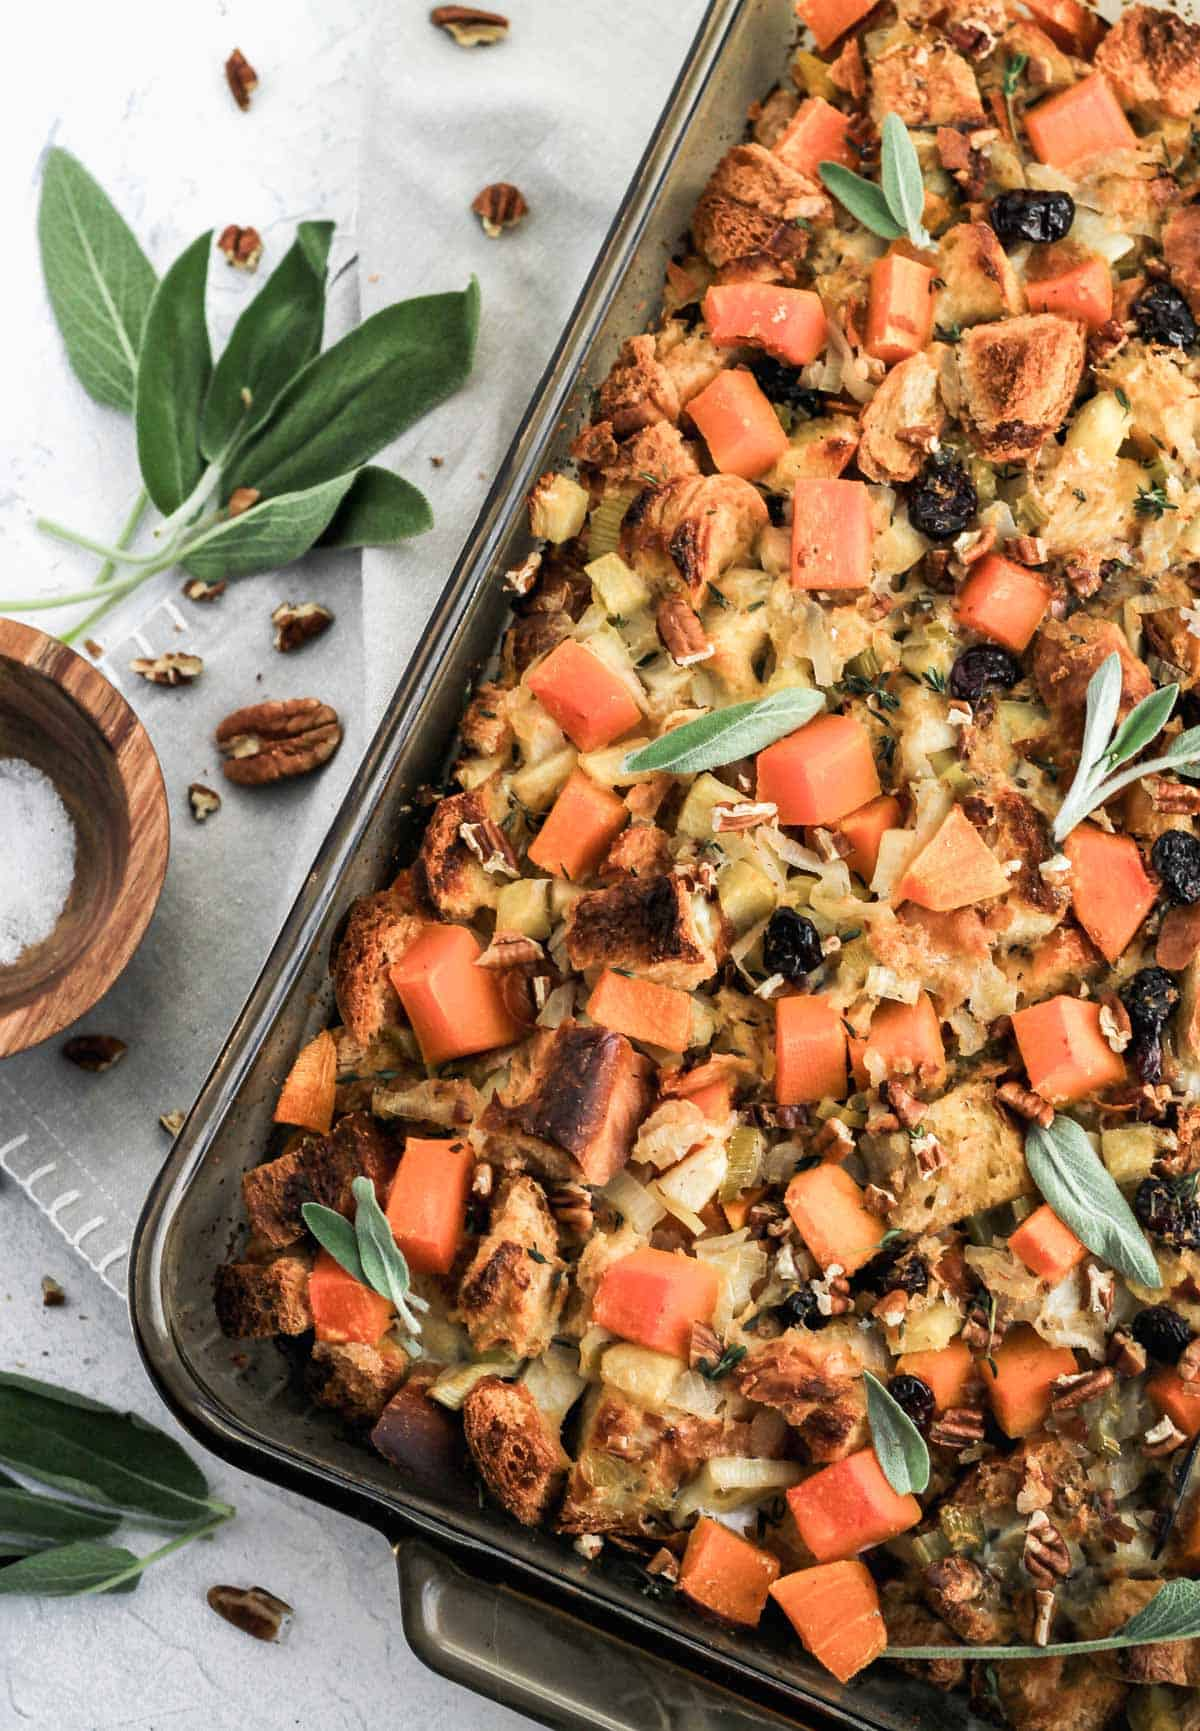 Butternut squash stuffing in a glass dish with a wooden bowl filled with salt and sage leaves on the side.